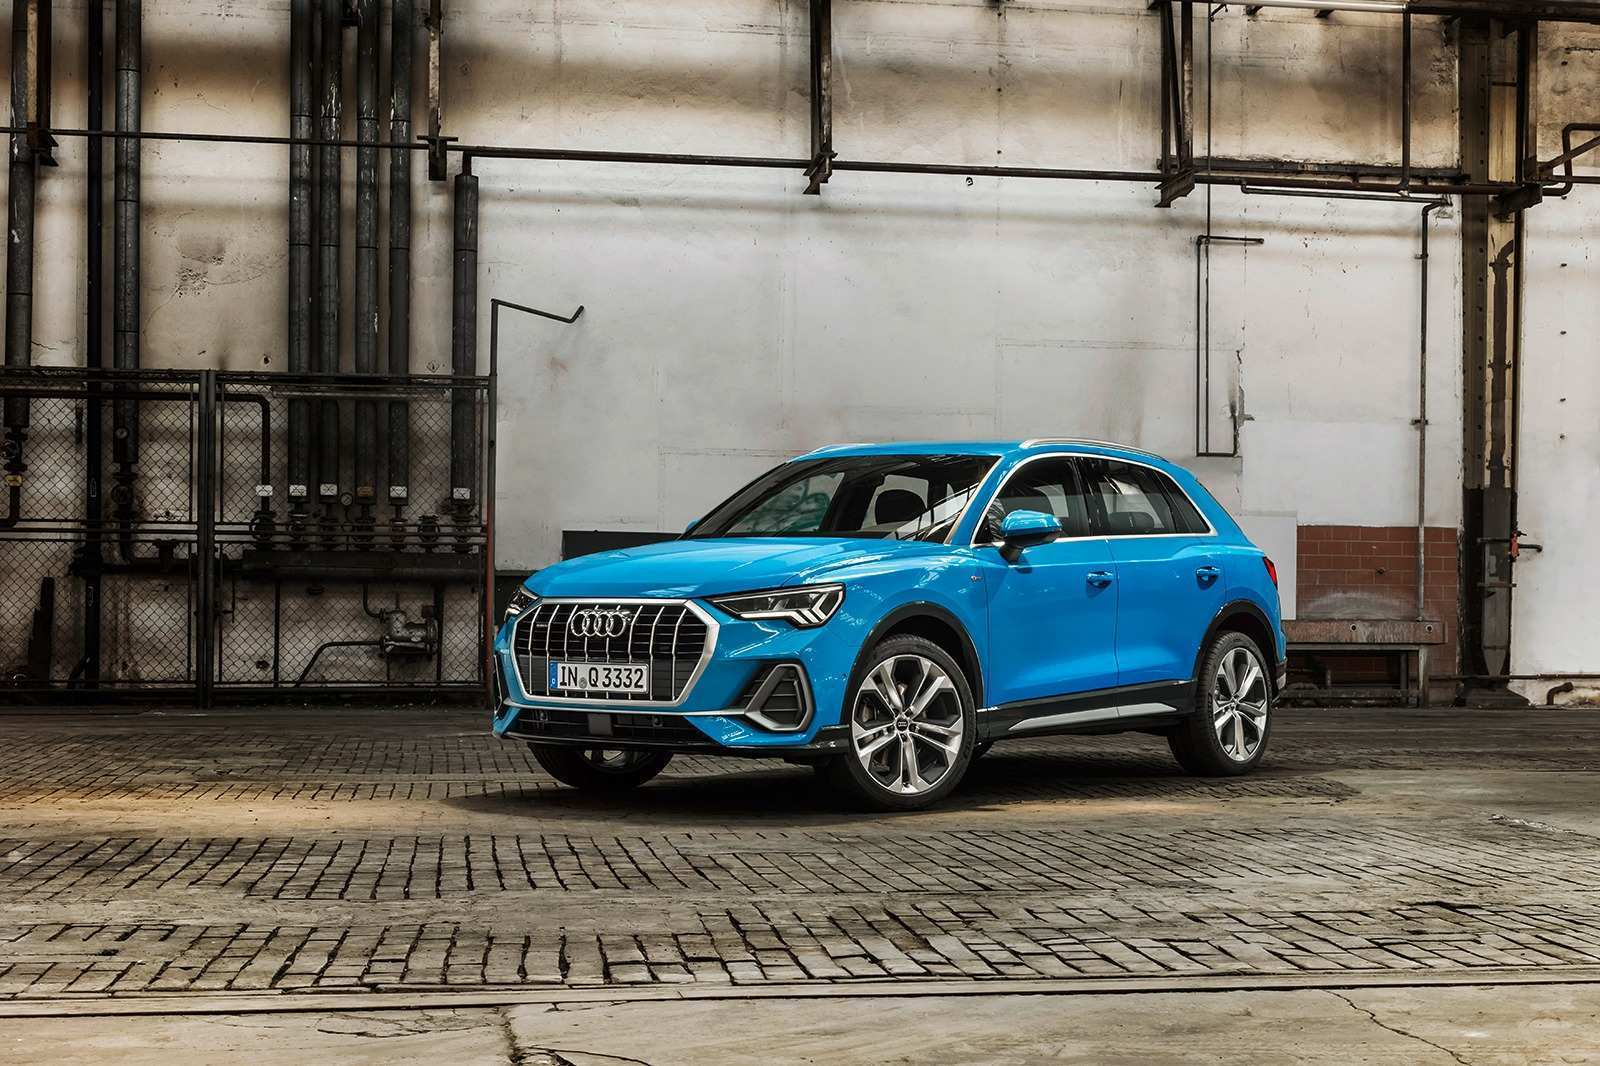 68 All New New Audi Q3 2019 Price First Drive Release with New Audi Q3 2019 Price First Drive